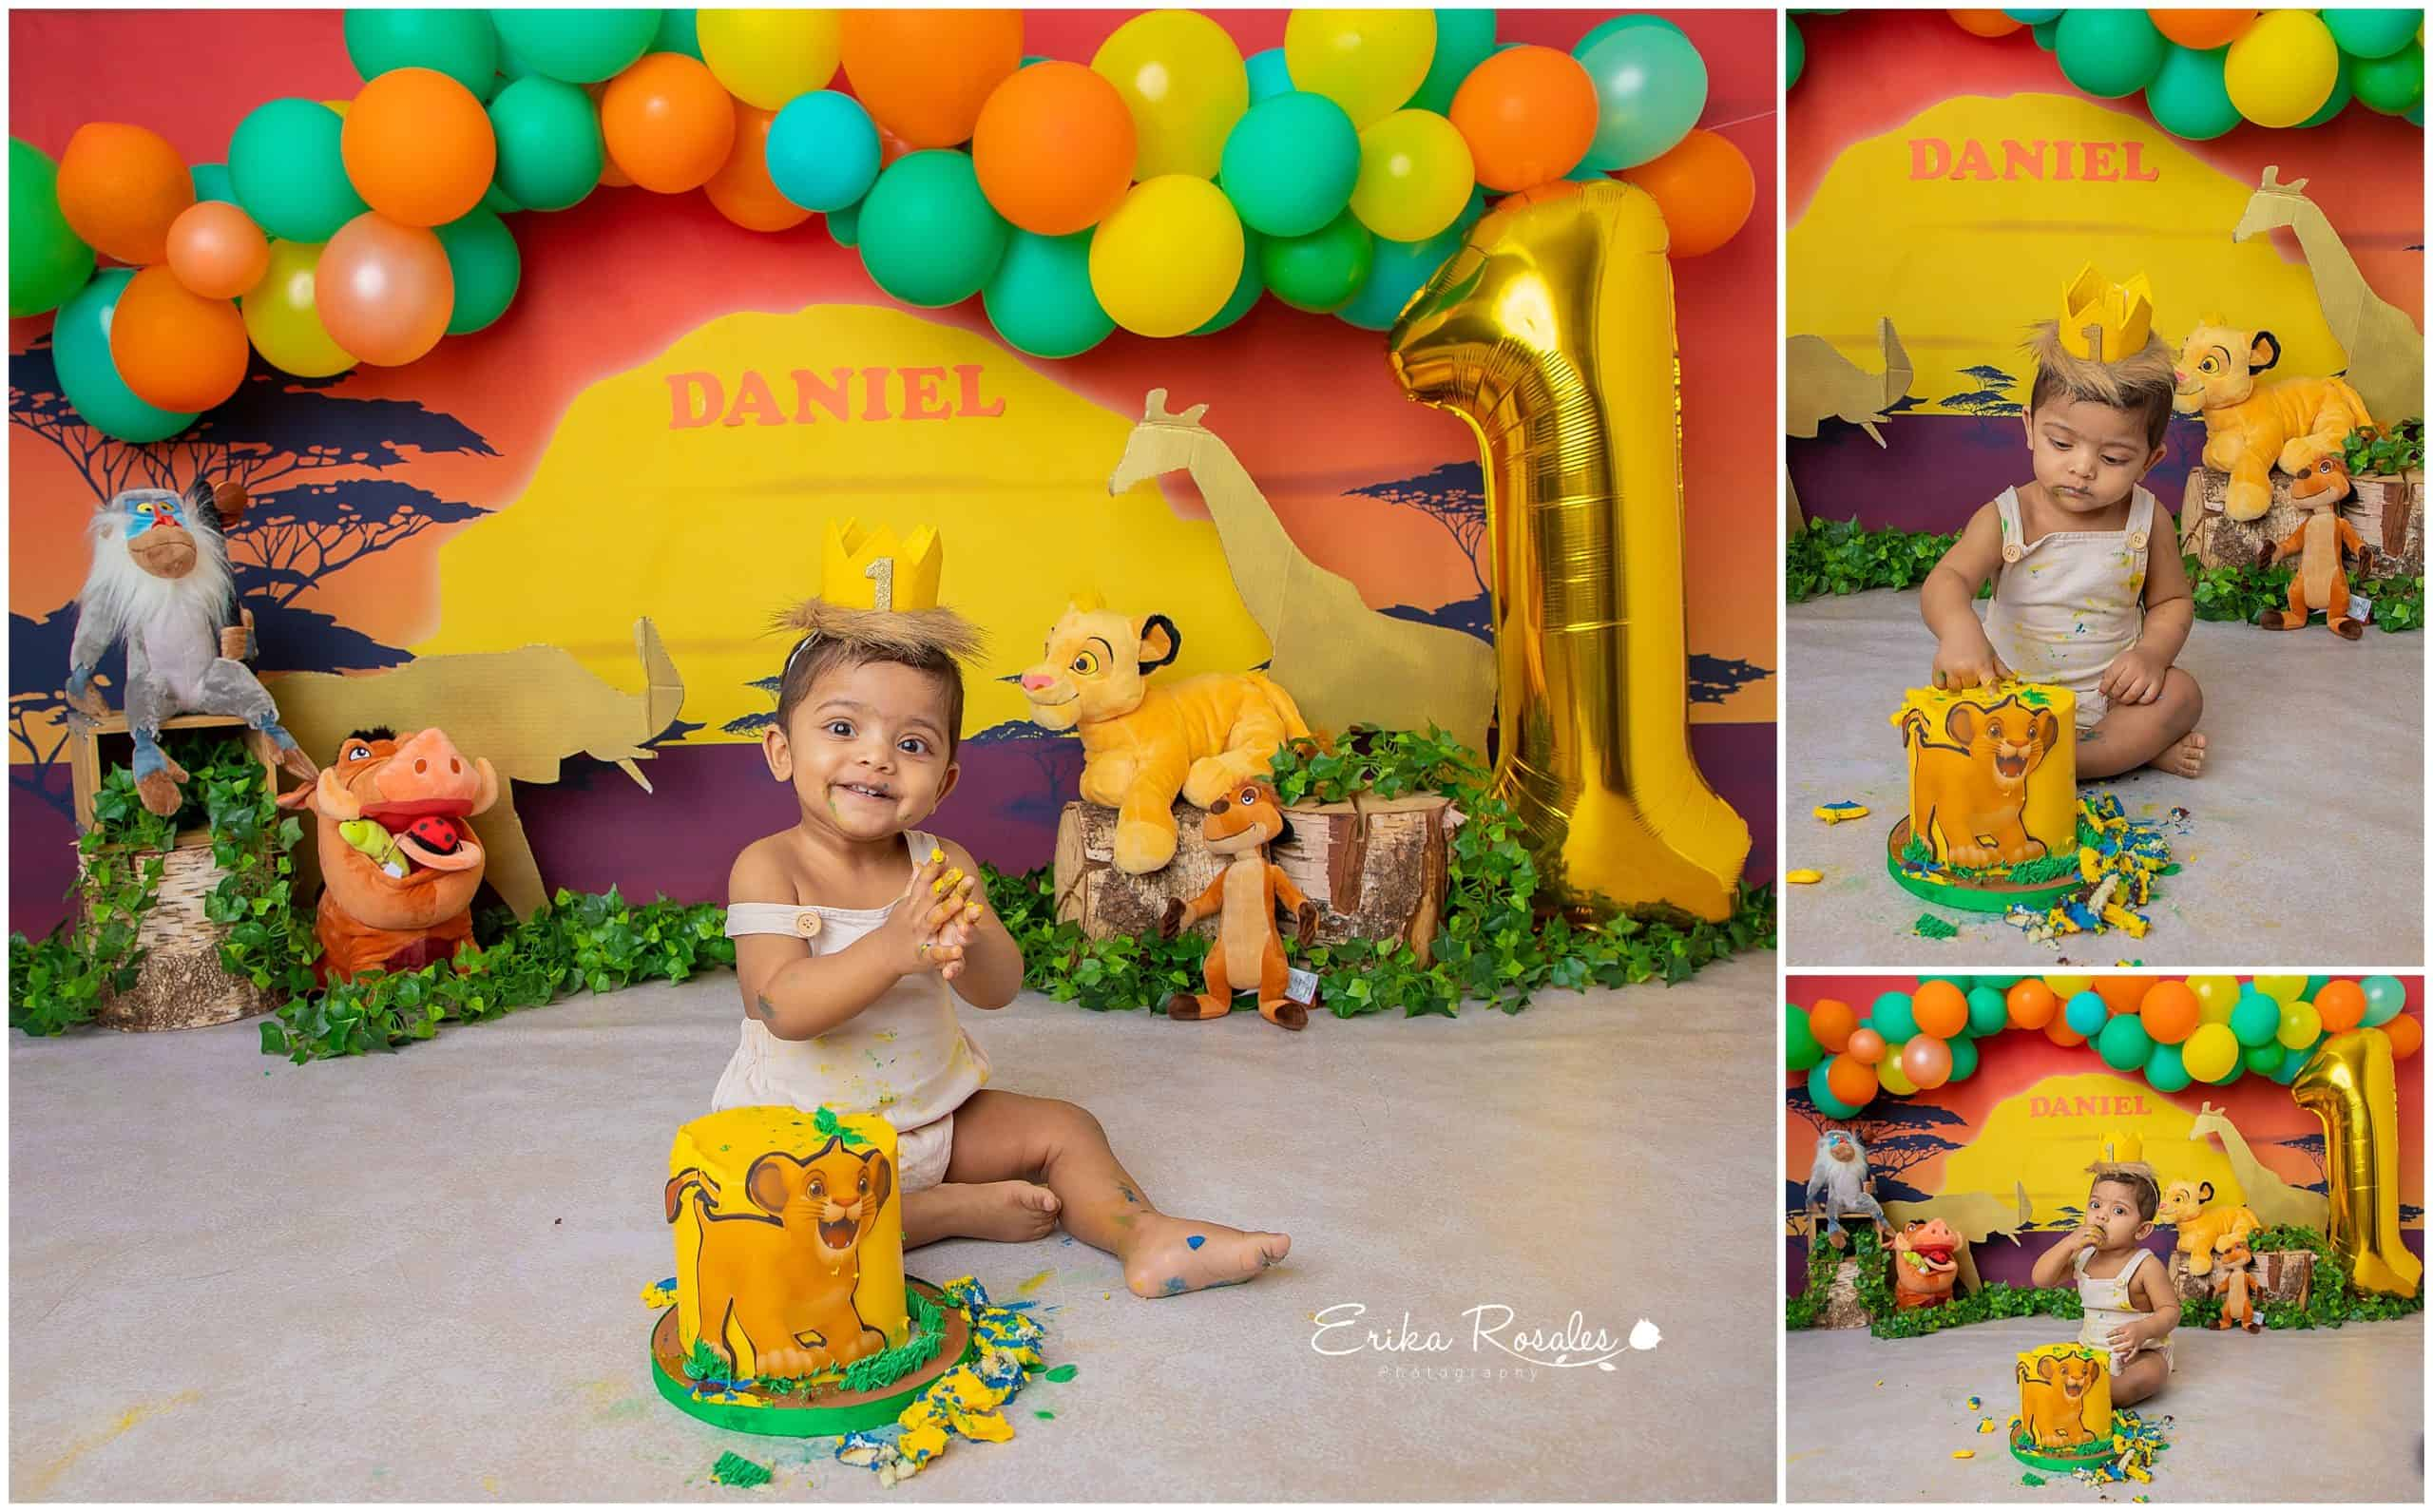 The Lion King First Birthday Cake Smash Archives Erika Rosales New York Photo Studio Family Portrait Studio In Bronx Ny